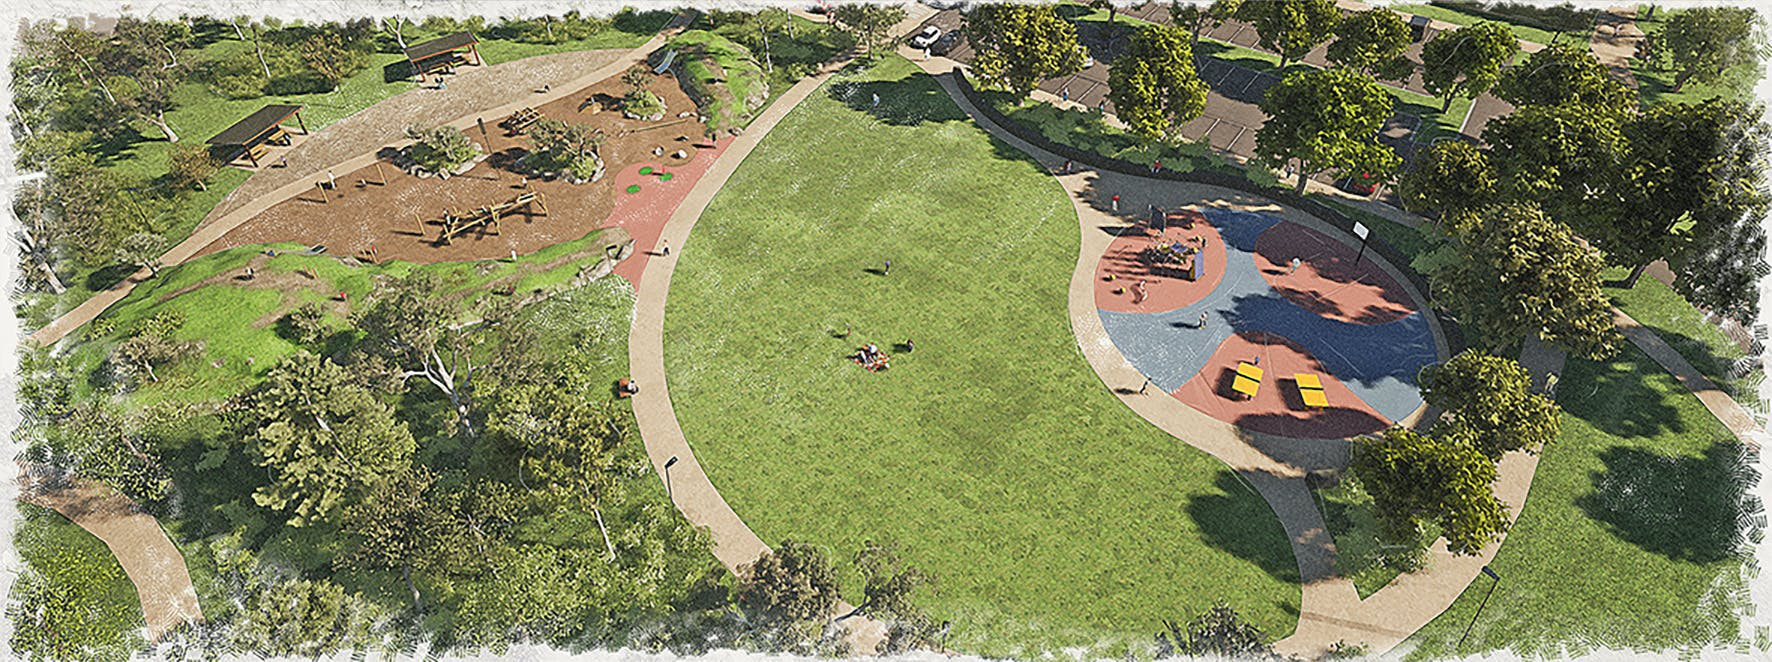 Aerial impression of upgraded playspace and landscape